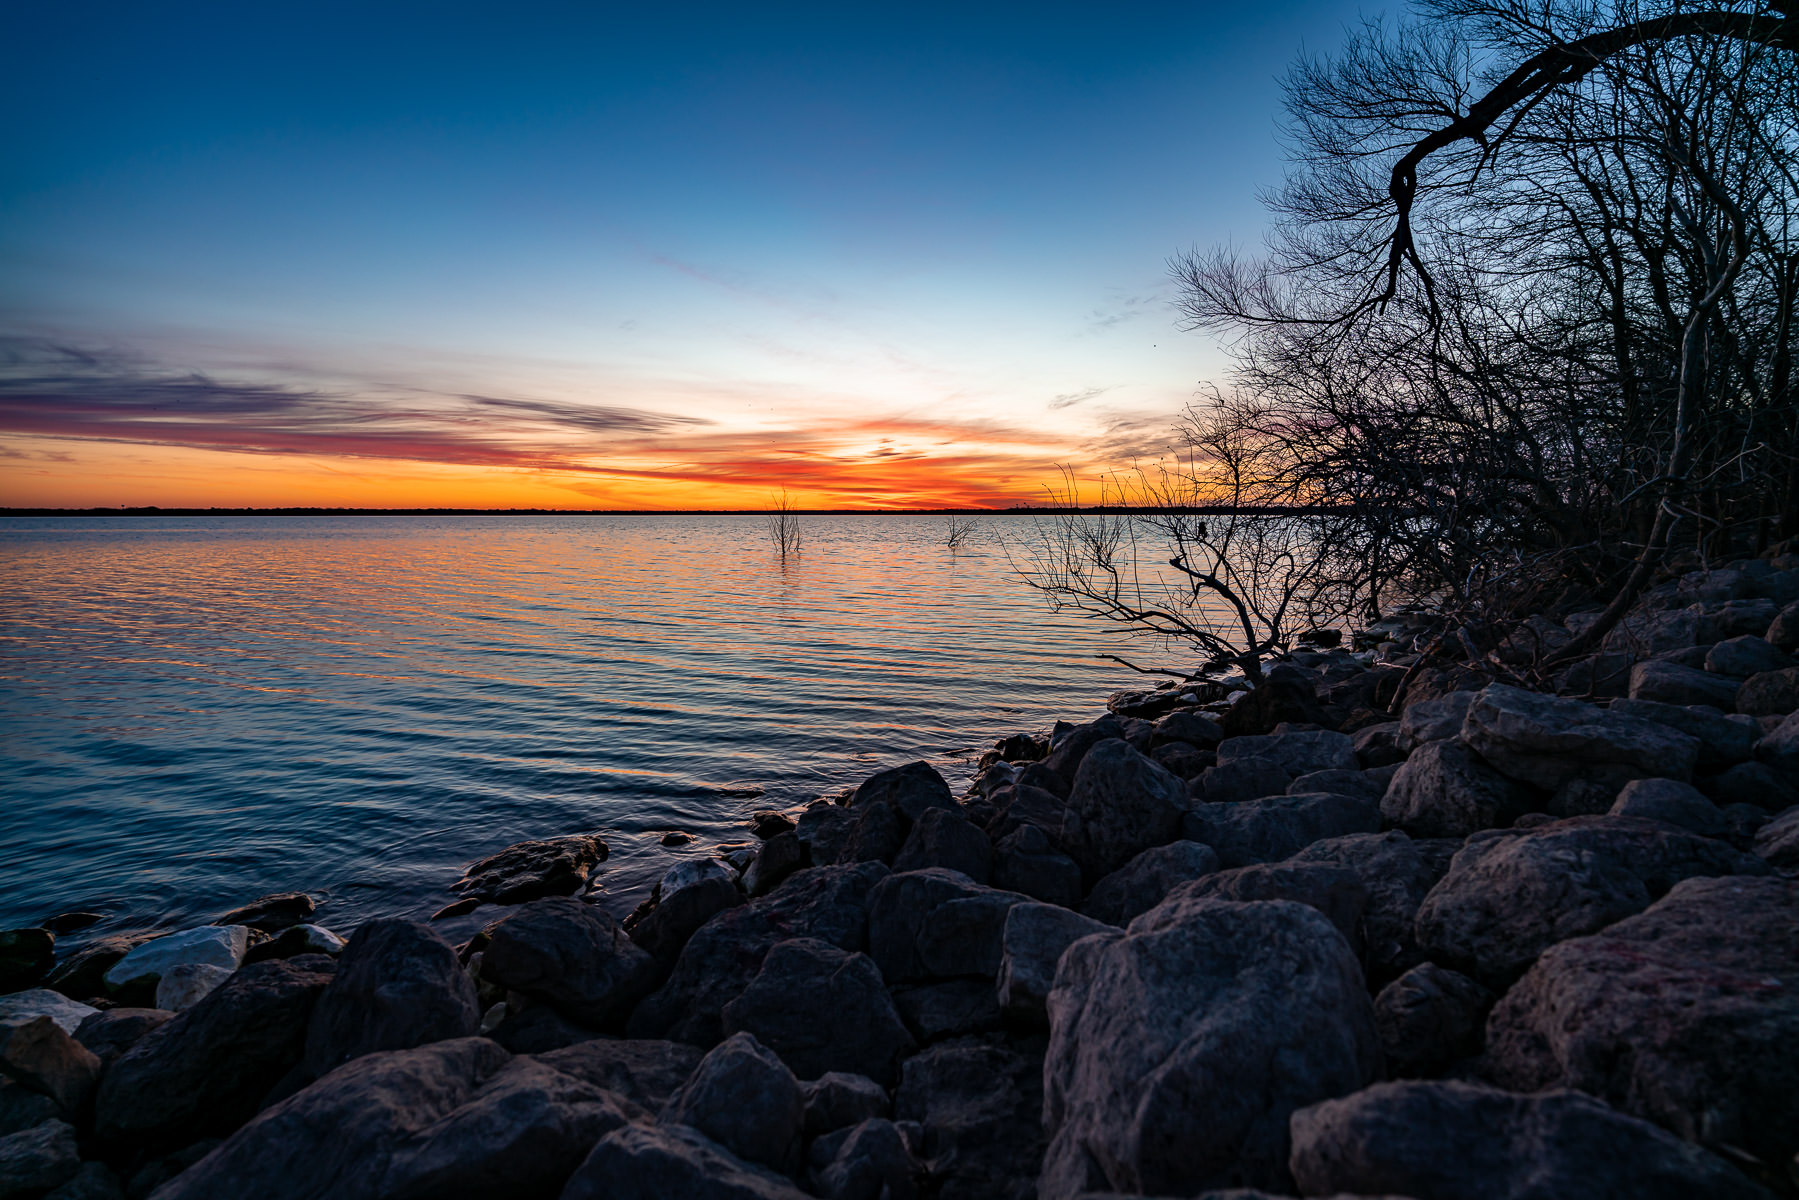 First light on North Texas' Lake Lavon.